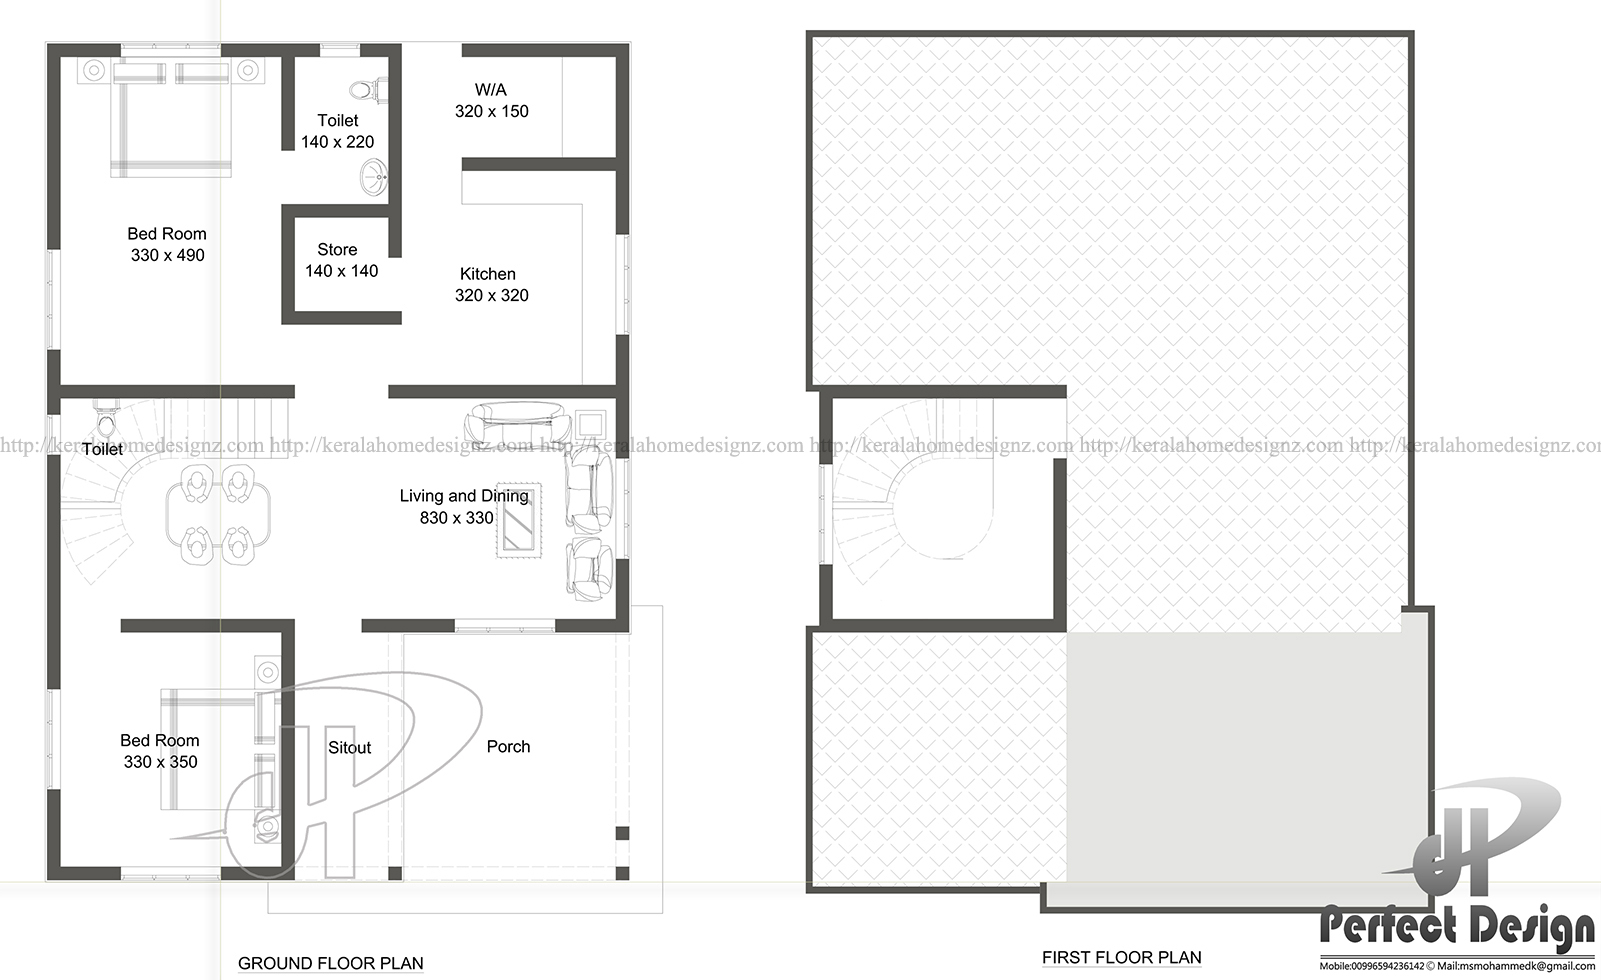 100 57 square meter condo opportunistic real estate private equity case study the address - Case study home designs for apartments undersquare meters ...